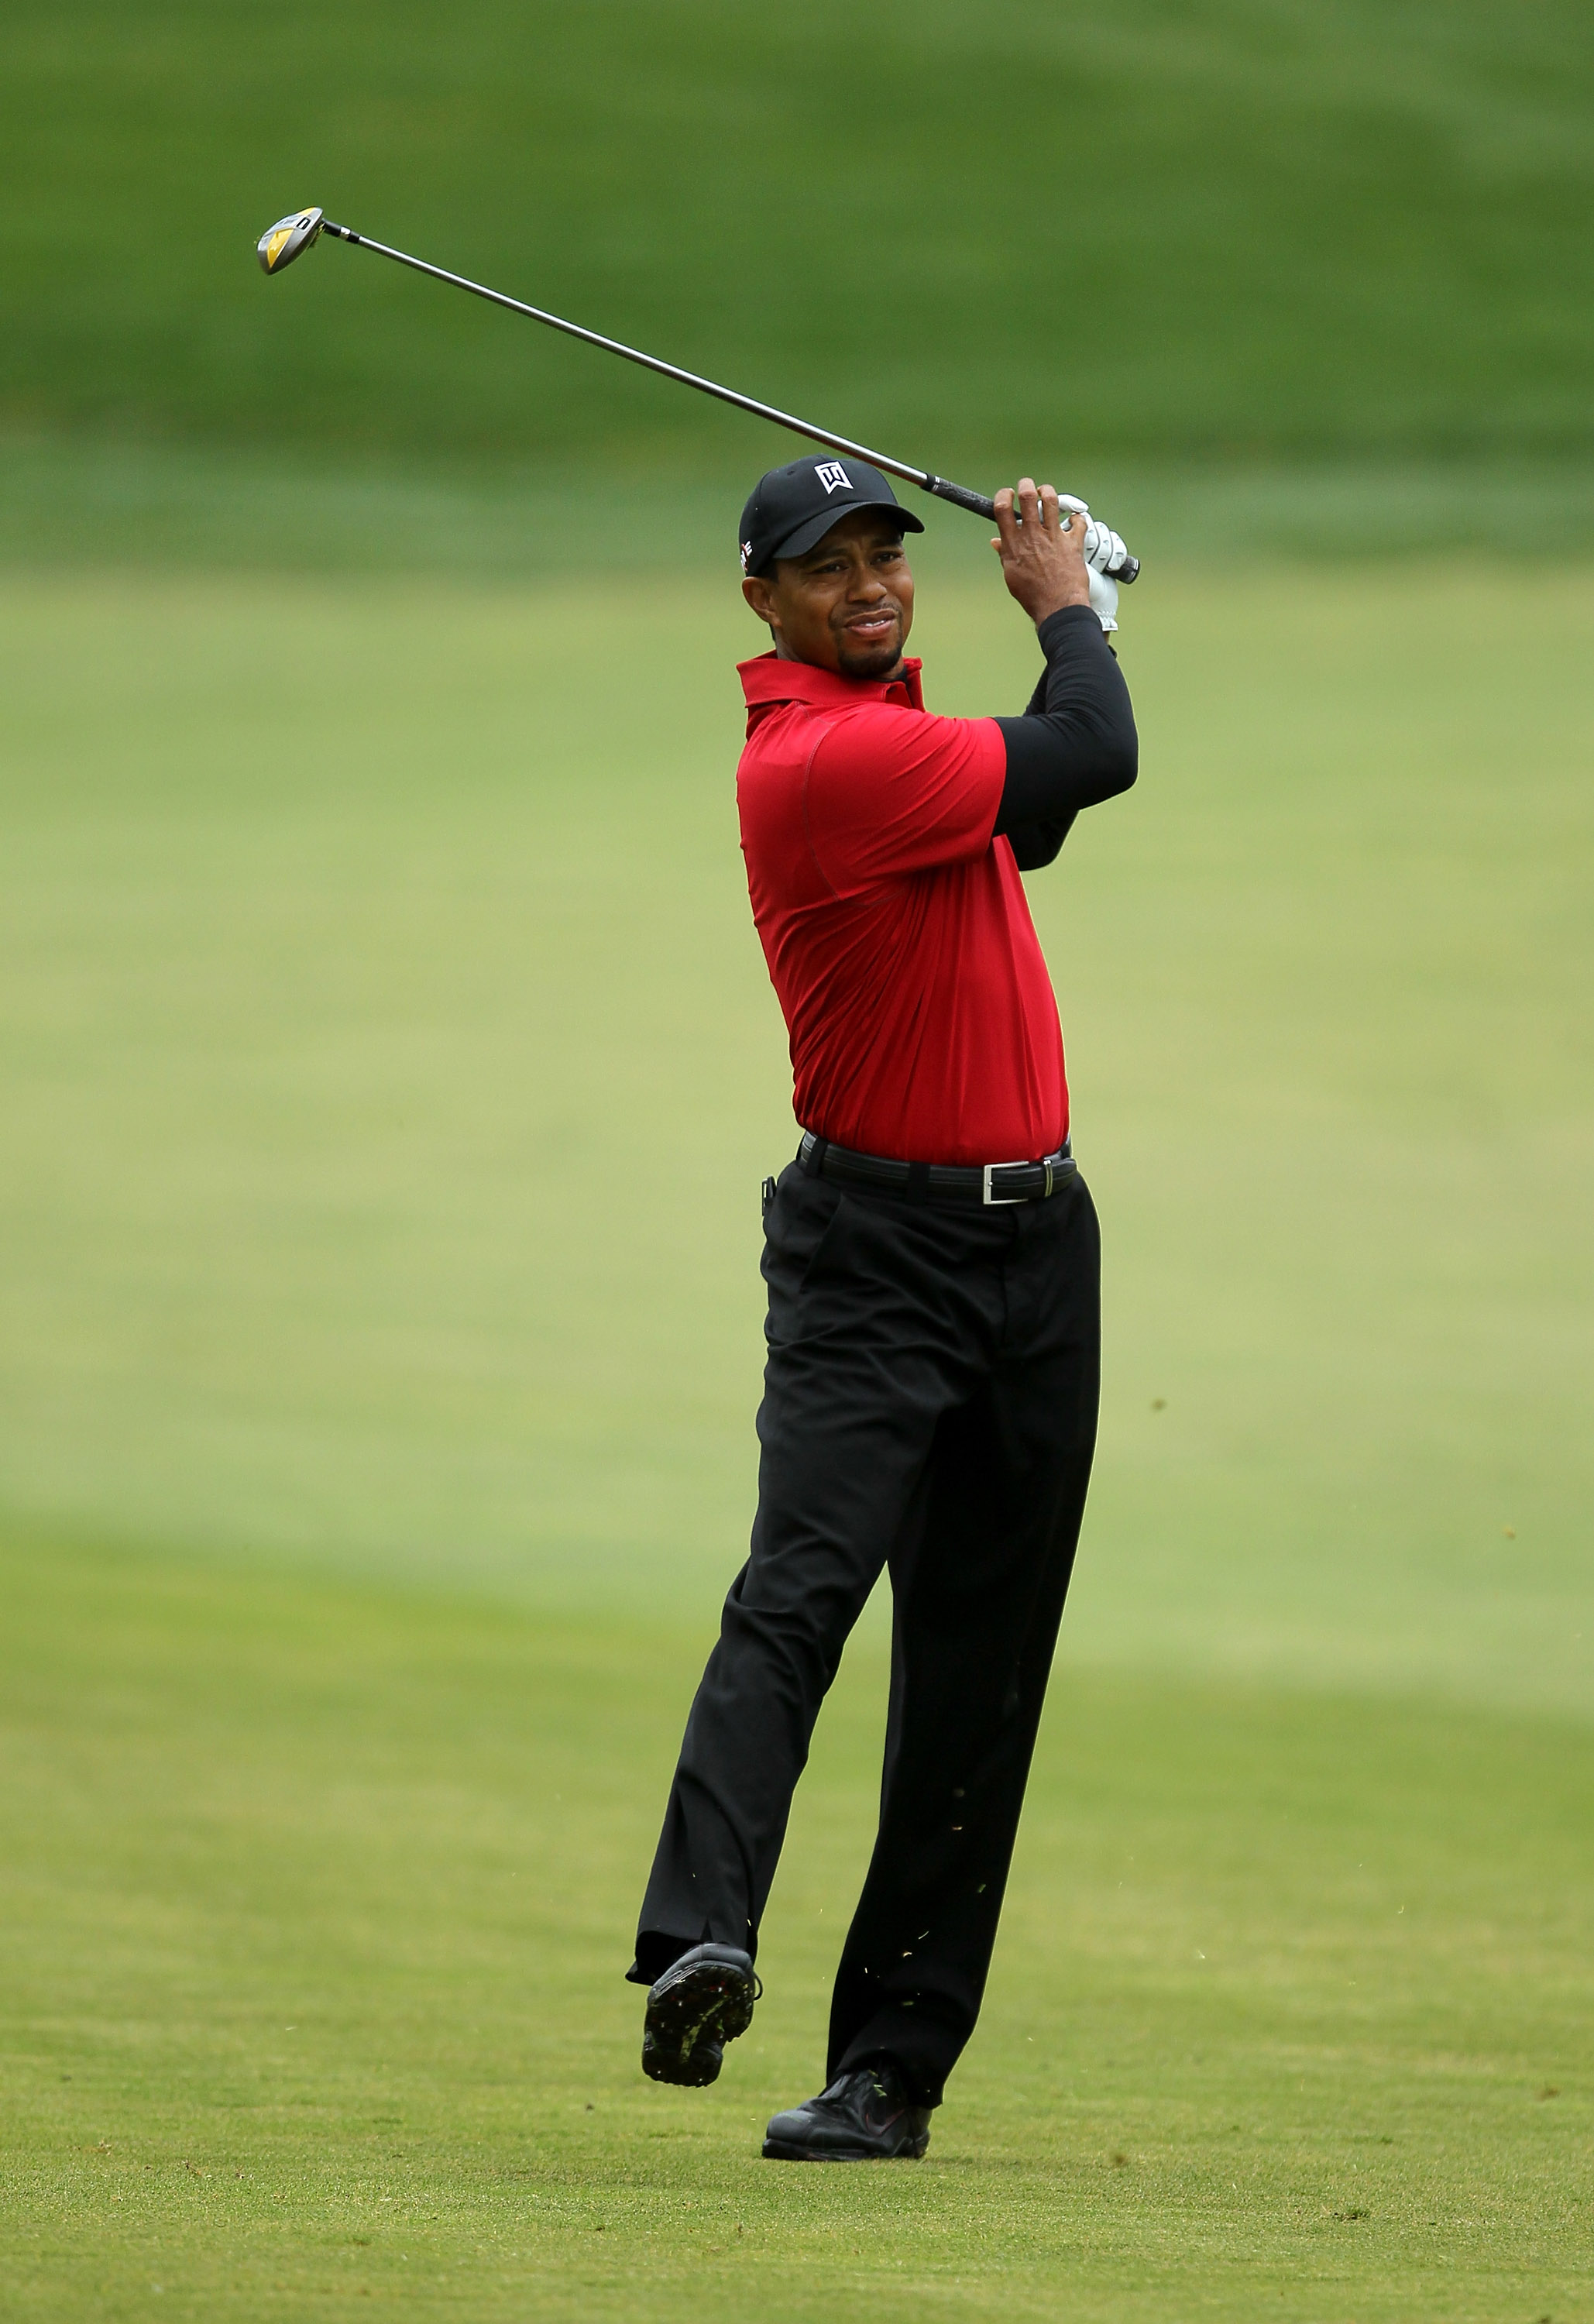 THOUSAND OAKS, CA - DECEMBER 05:  Tiger Woods reacts to his second shot on the 16th hole during the final round of the Chevron World Challenge at Sherwood Country Club on December 5, 2010 in Thousand Oaks, California.  (Photo by Stephen Dunn/Getty Images)